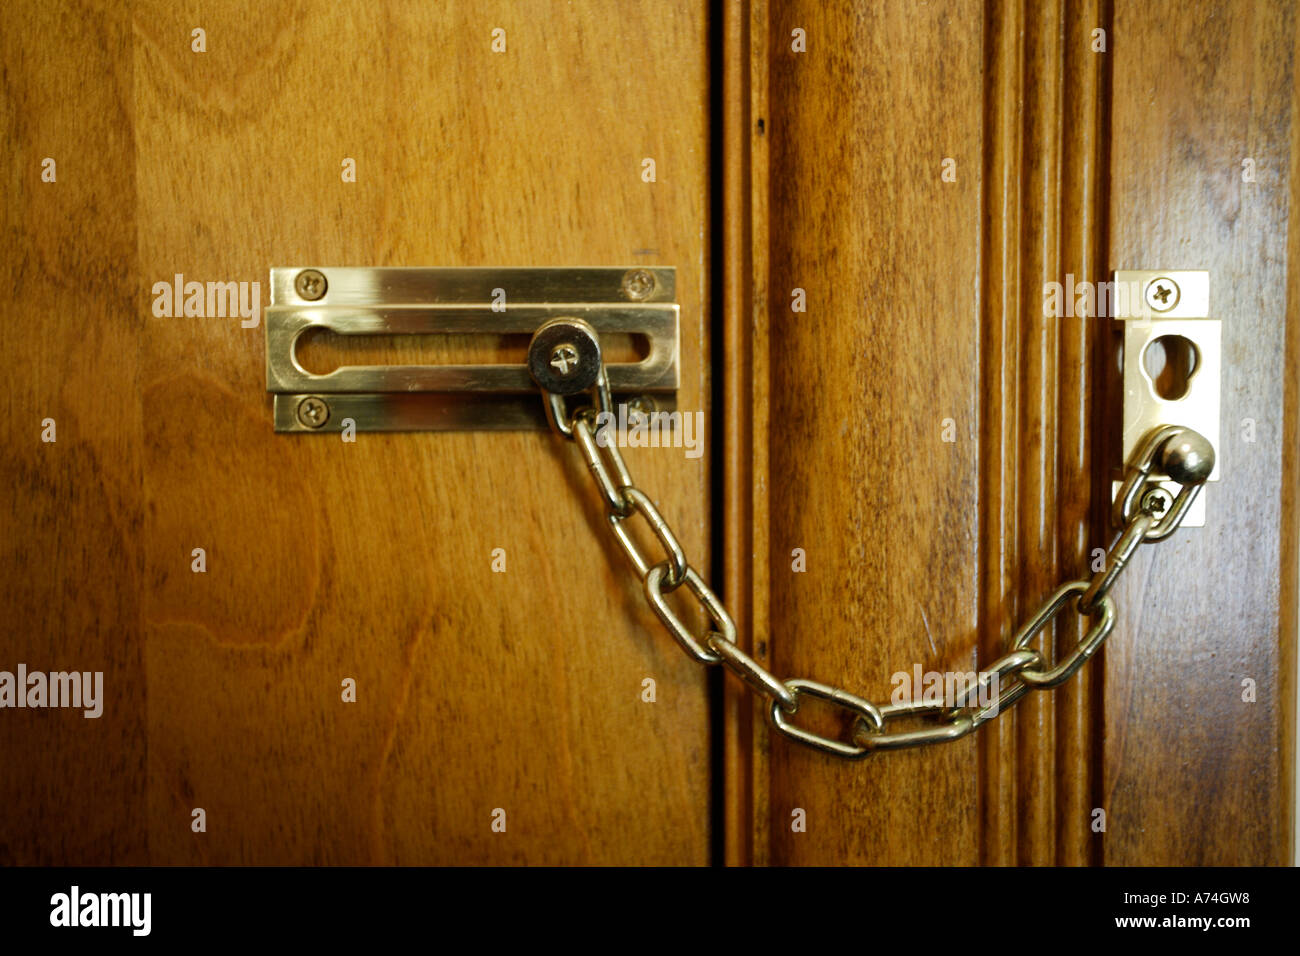 Locked Door With Chain Lock Stock Photo, Royalty Free